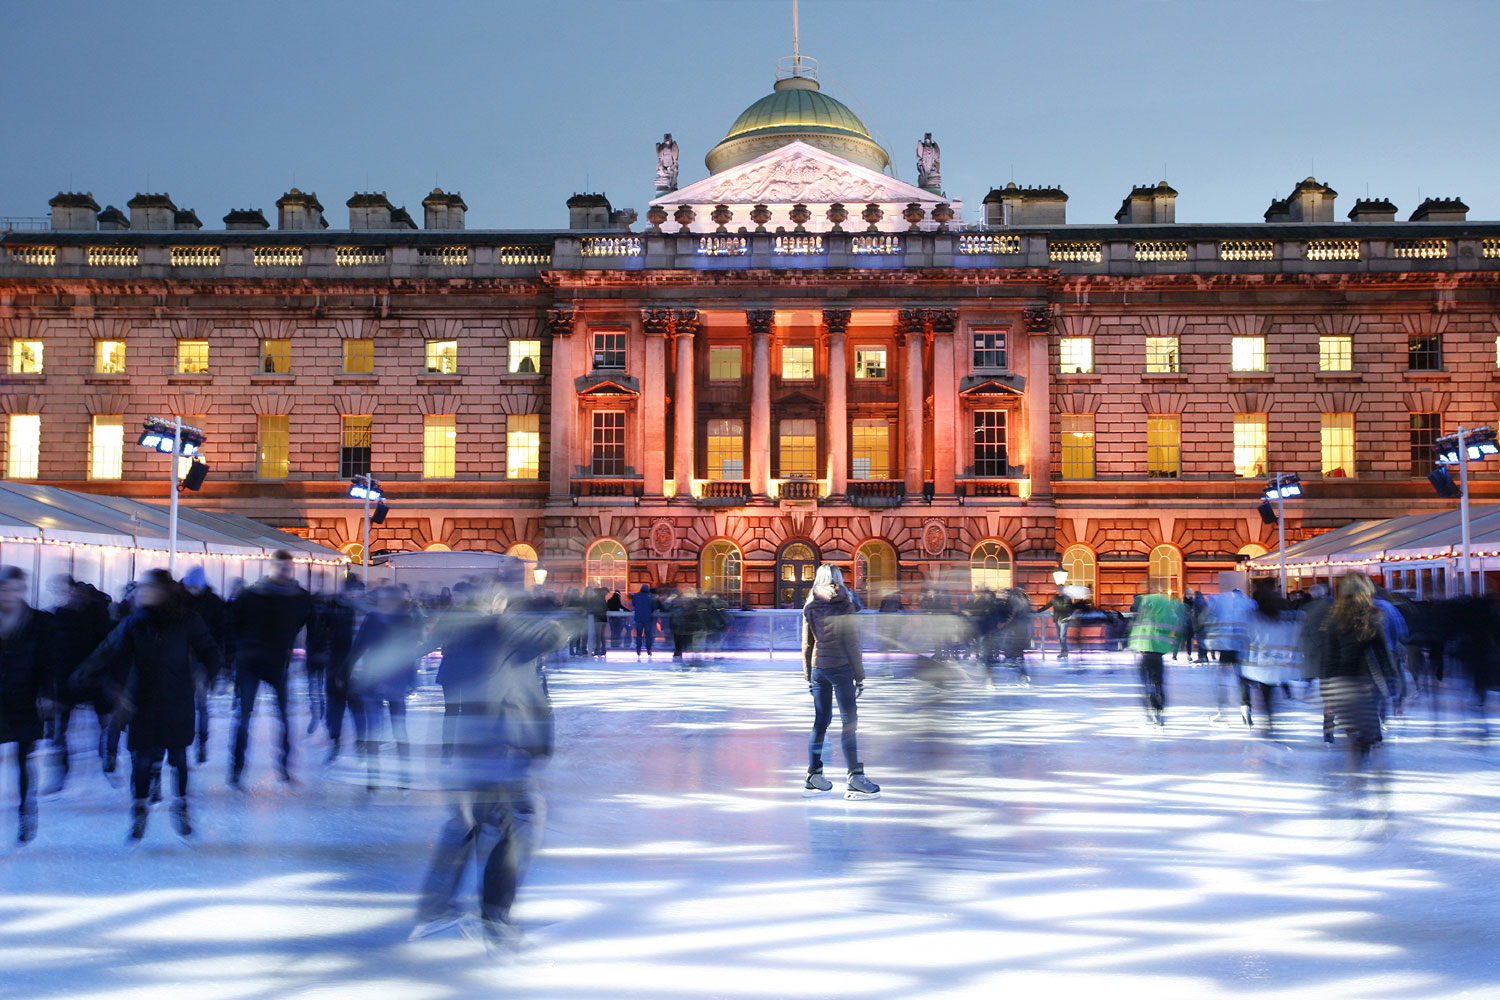 London's most beautiful ice skating venue is Skate at Somerset House. Each winter, the open-air ice rink is built into the grand Neoclassical courtyard of Somerset House in Central London. In the evening, the space becomes a glamorous open-air nightclub.